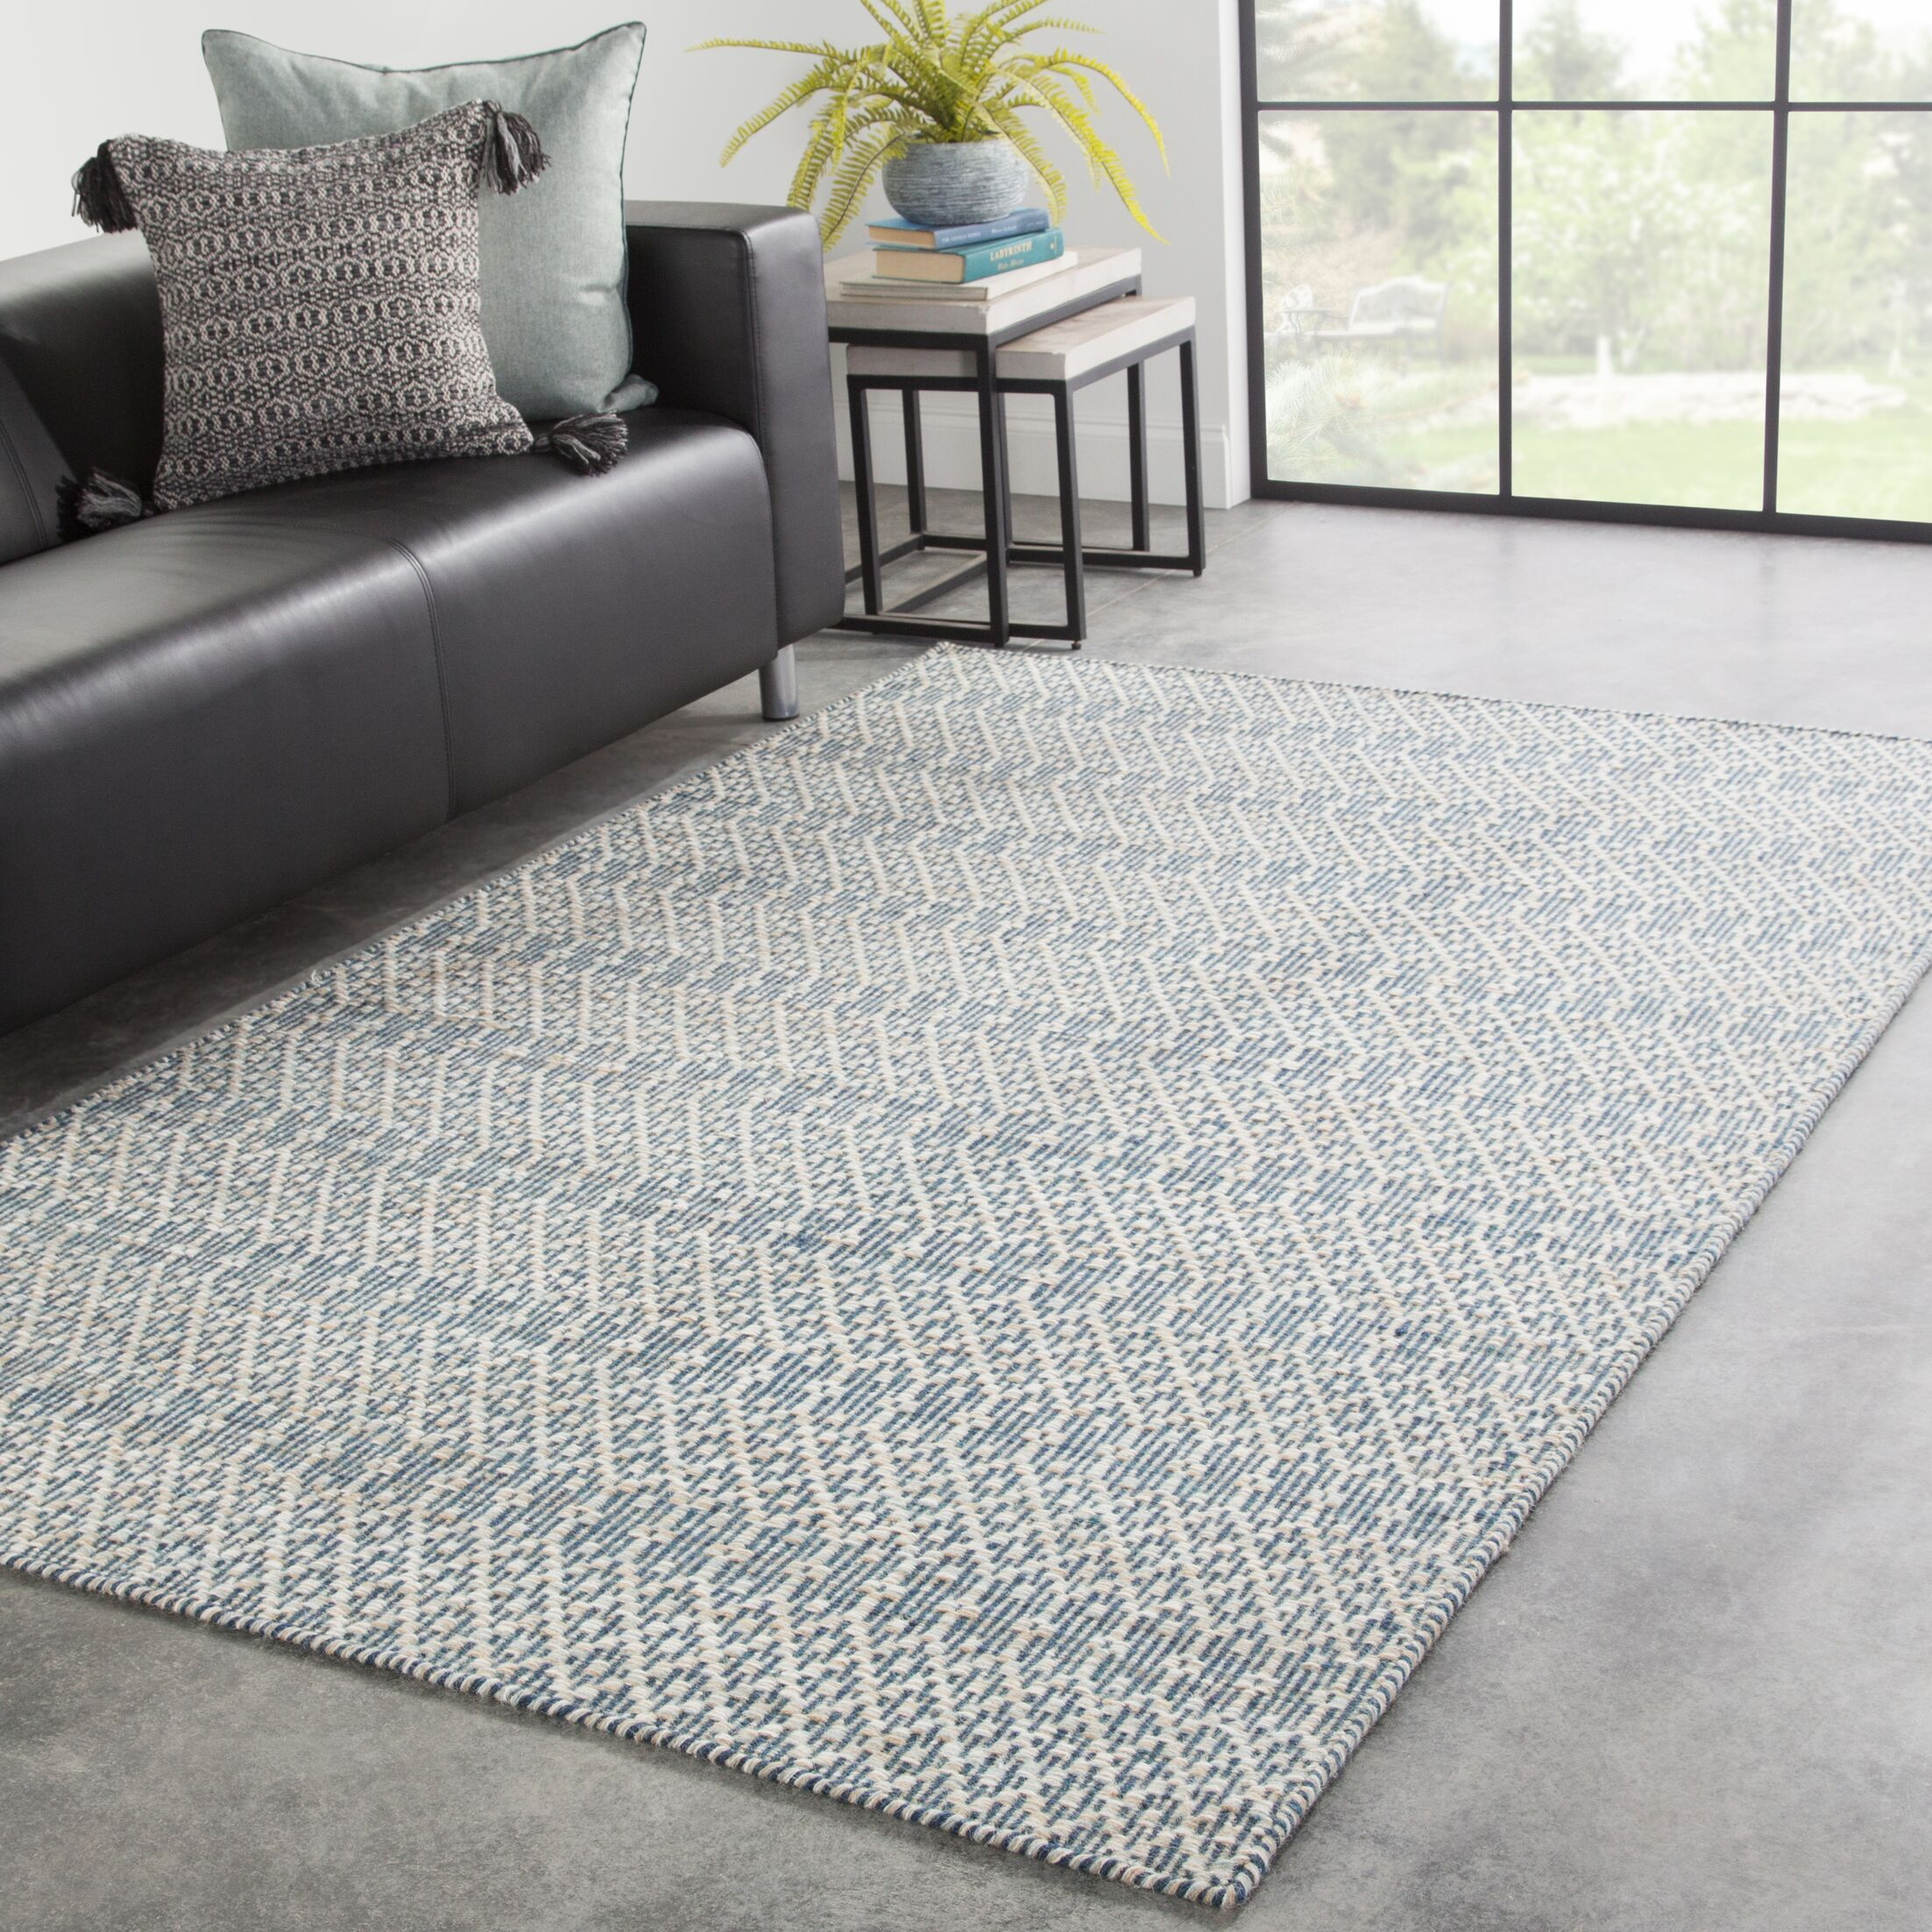 Dowling Handwoven Flatweave Wool Blue/Beige Area Rug Rug Size: Rectangle 7'10